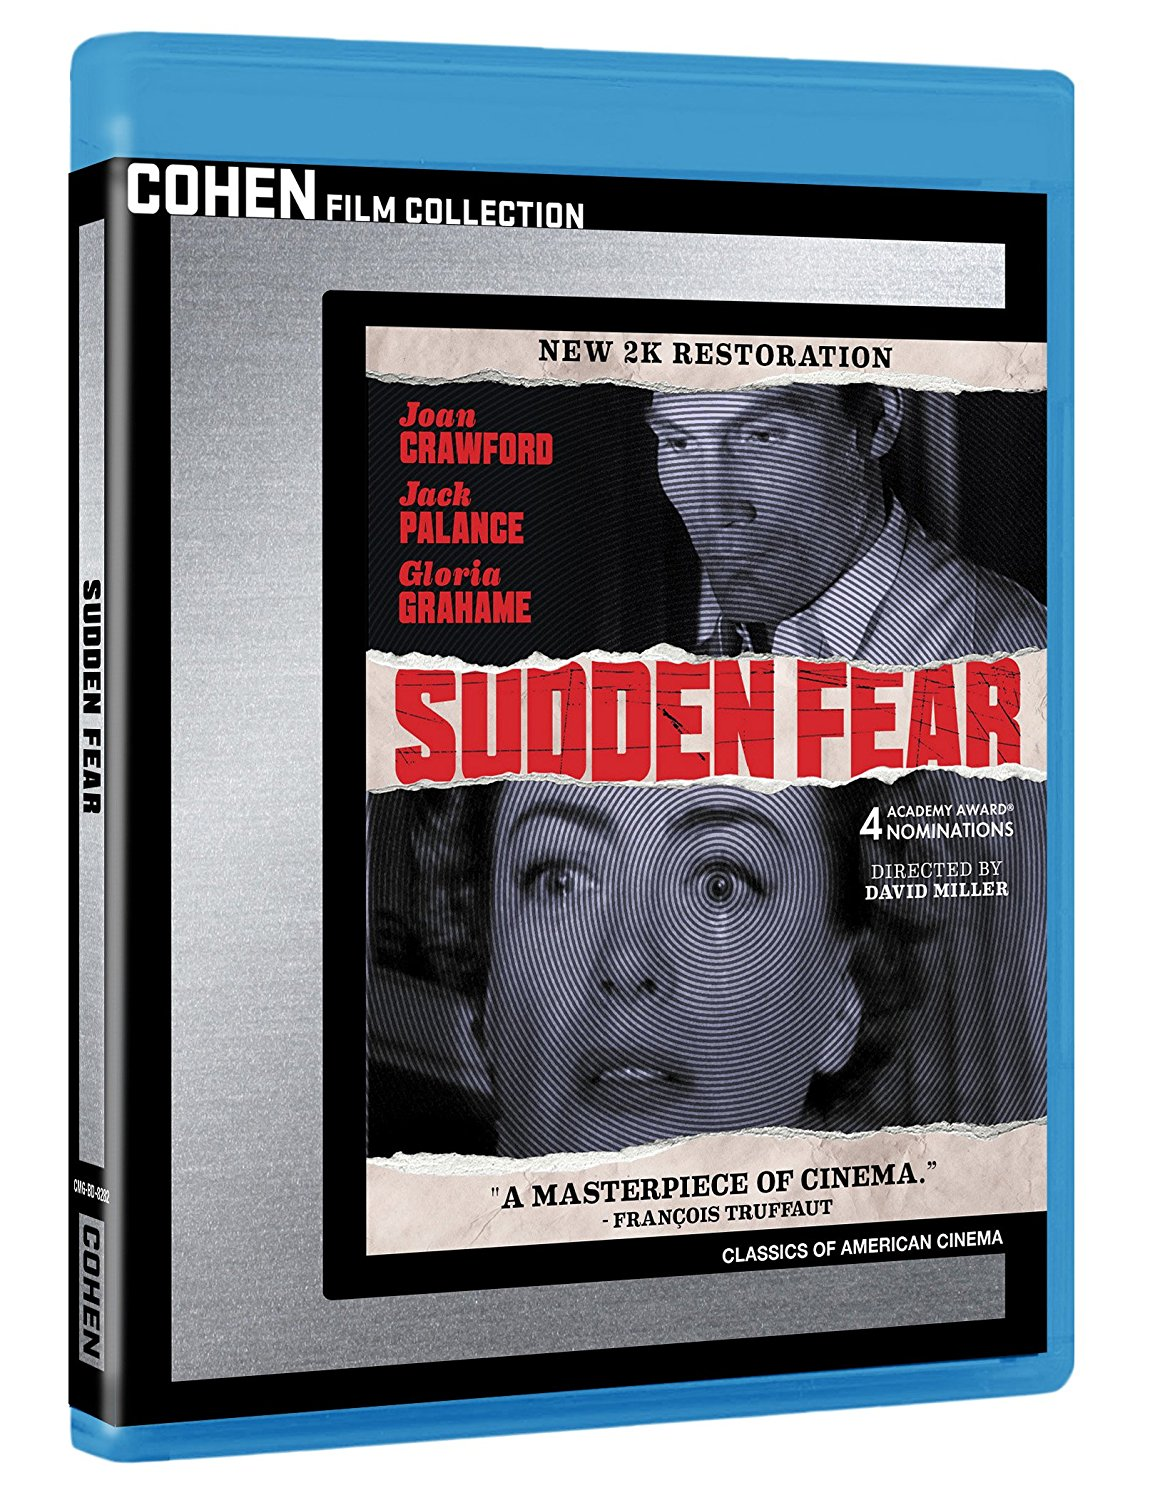 Sudden Fear, starring Joan Crawford, Jack Palance, Gloria Grahame